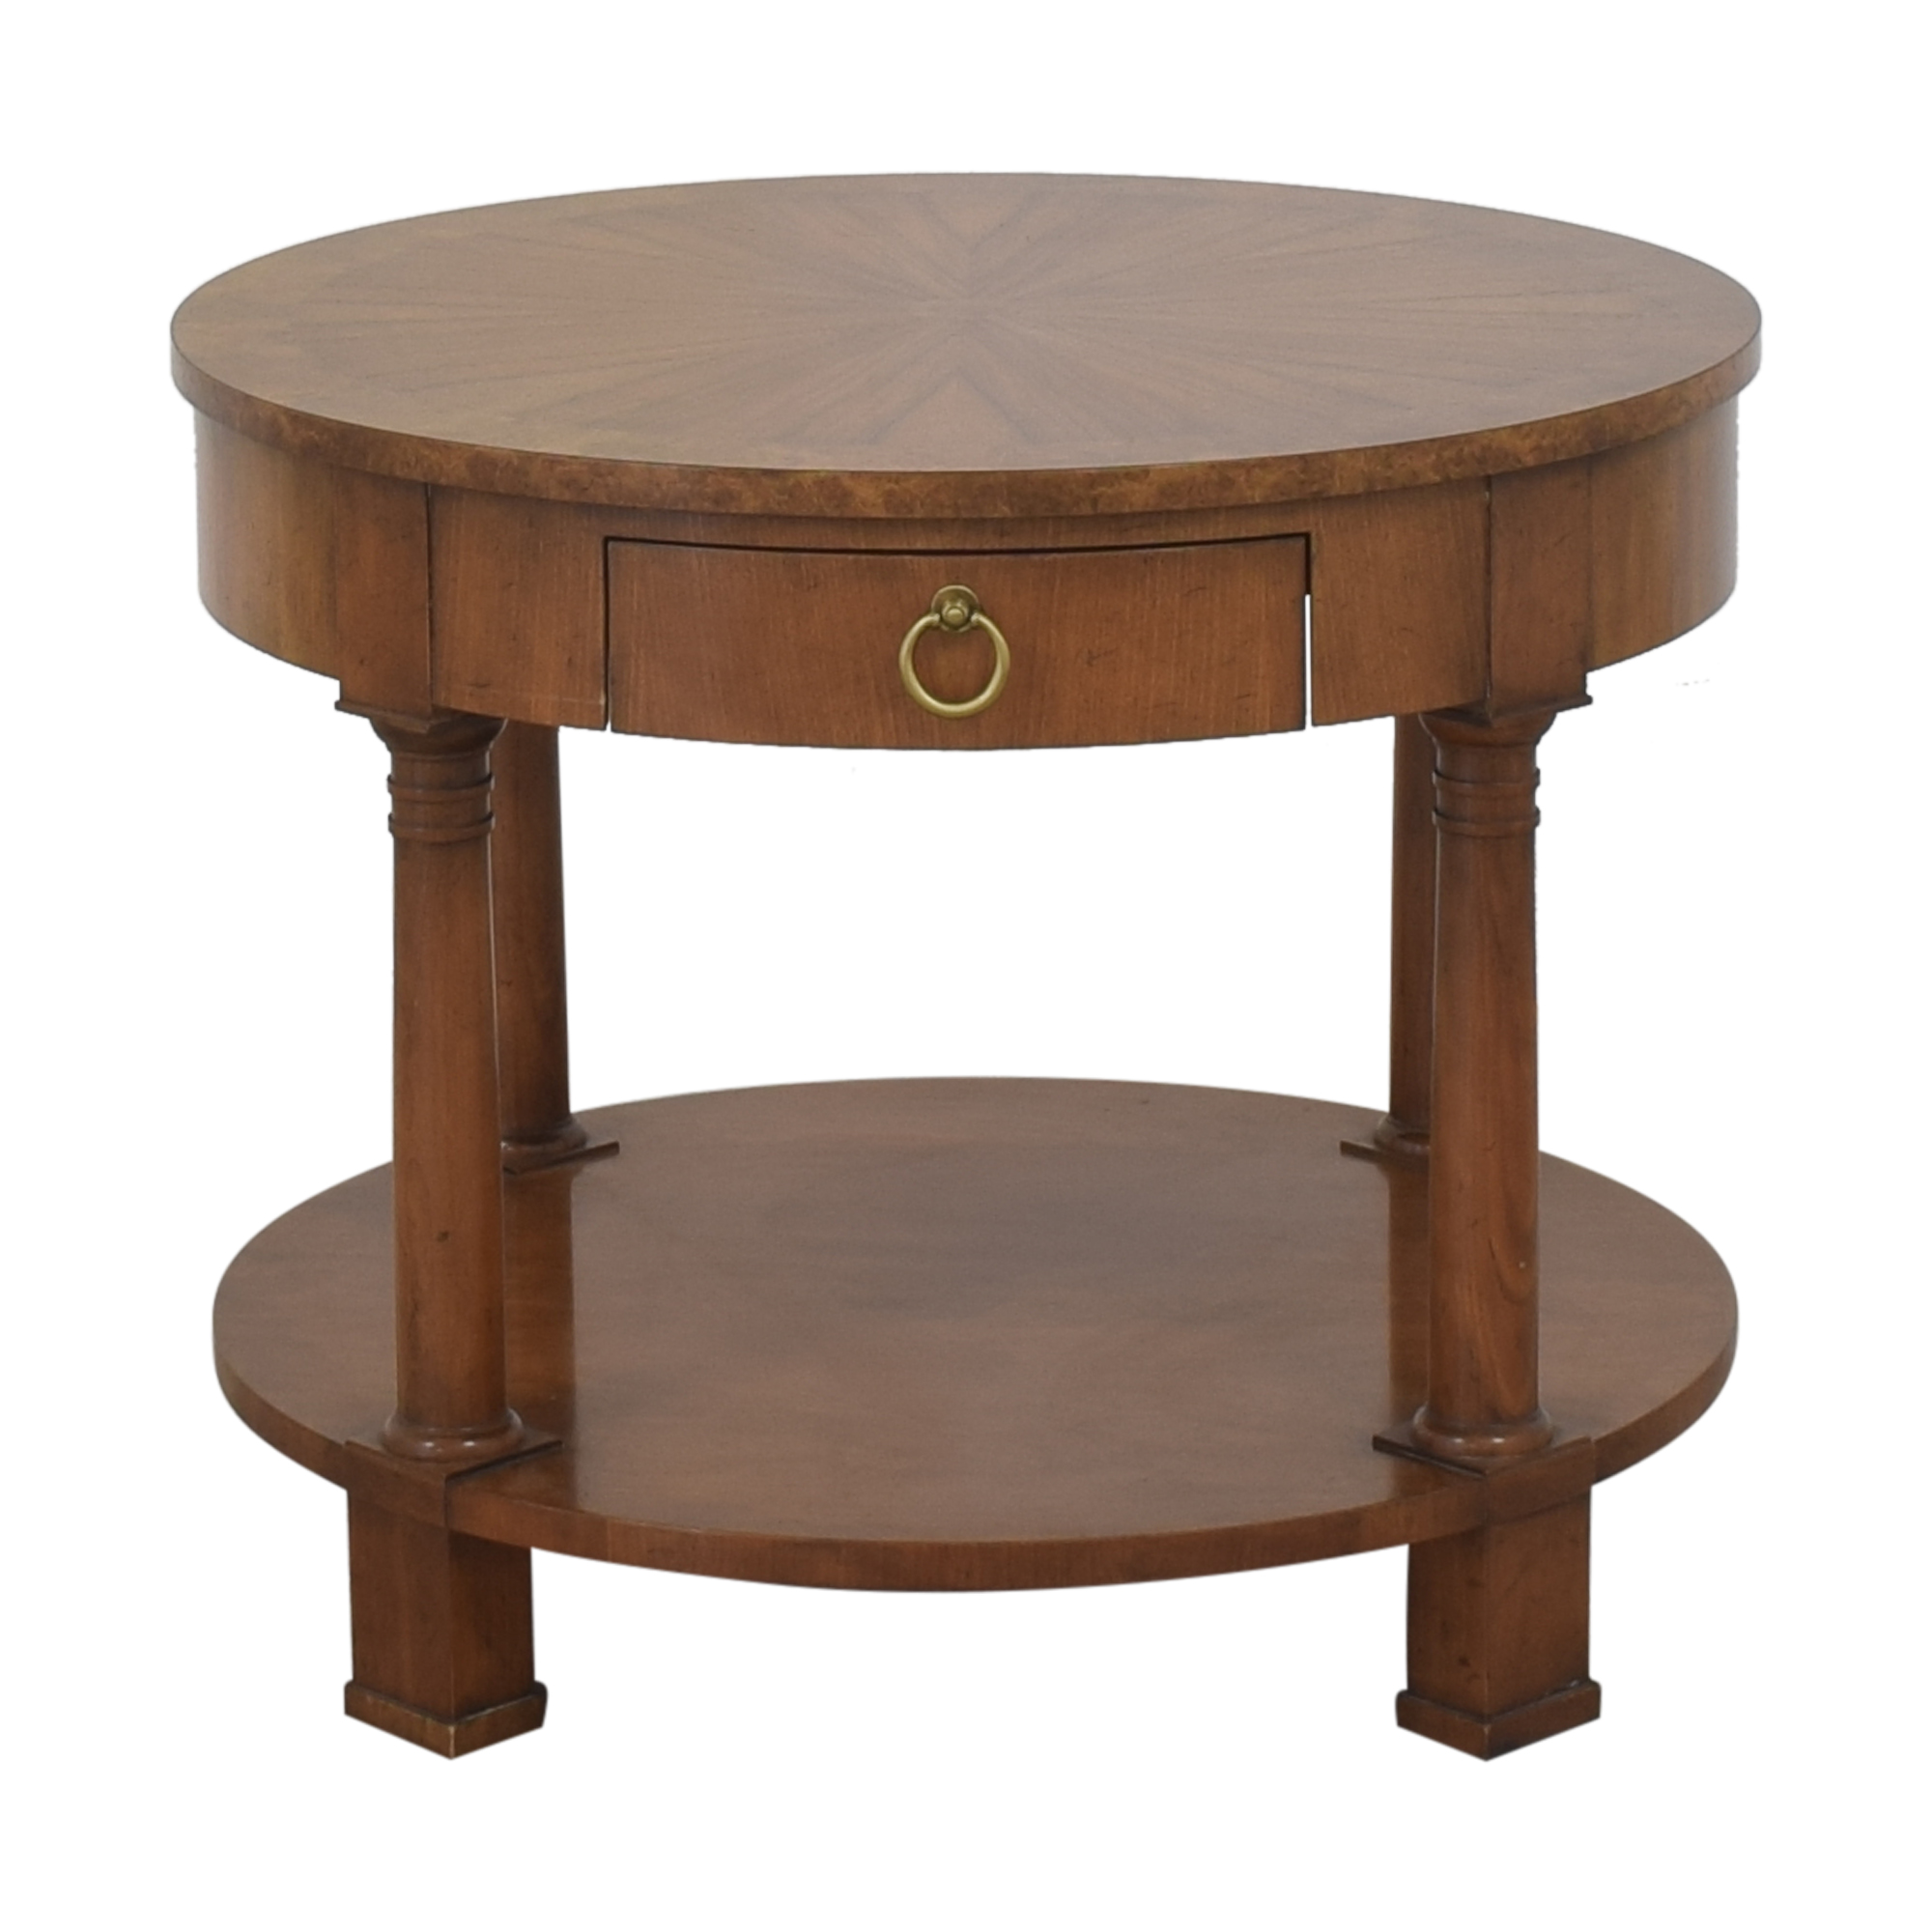 Baker Furniture Round End Table / End Tables